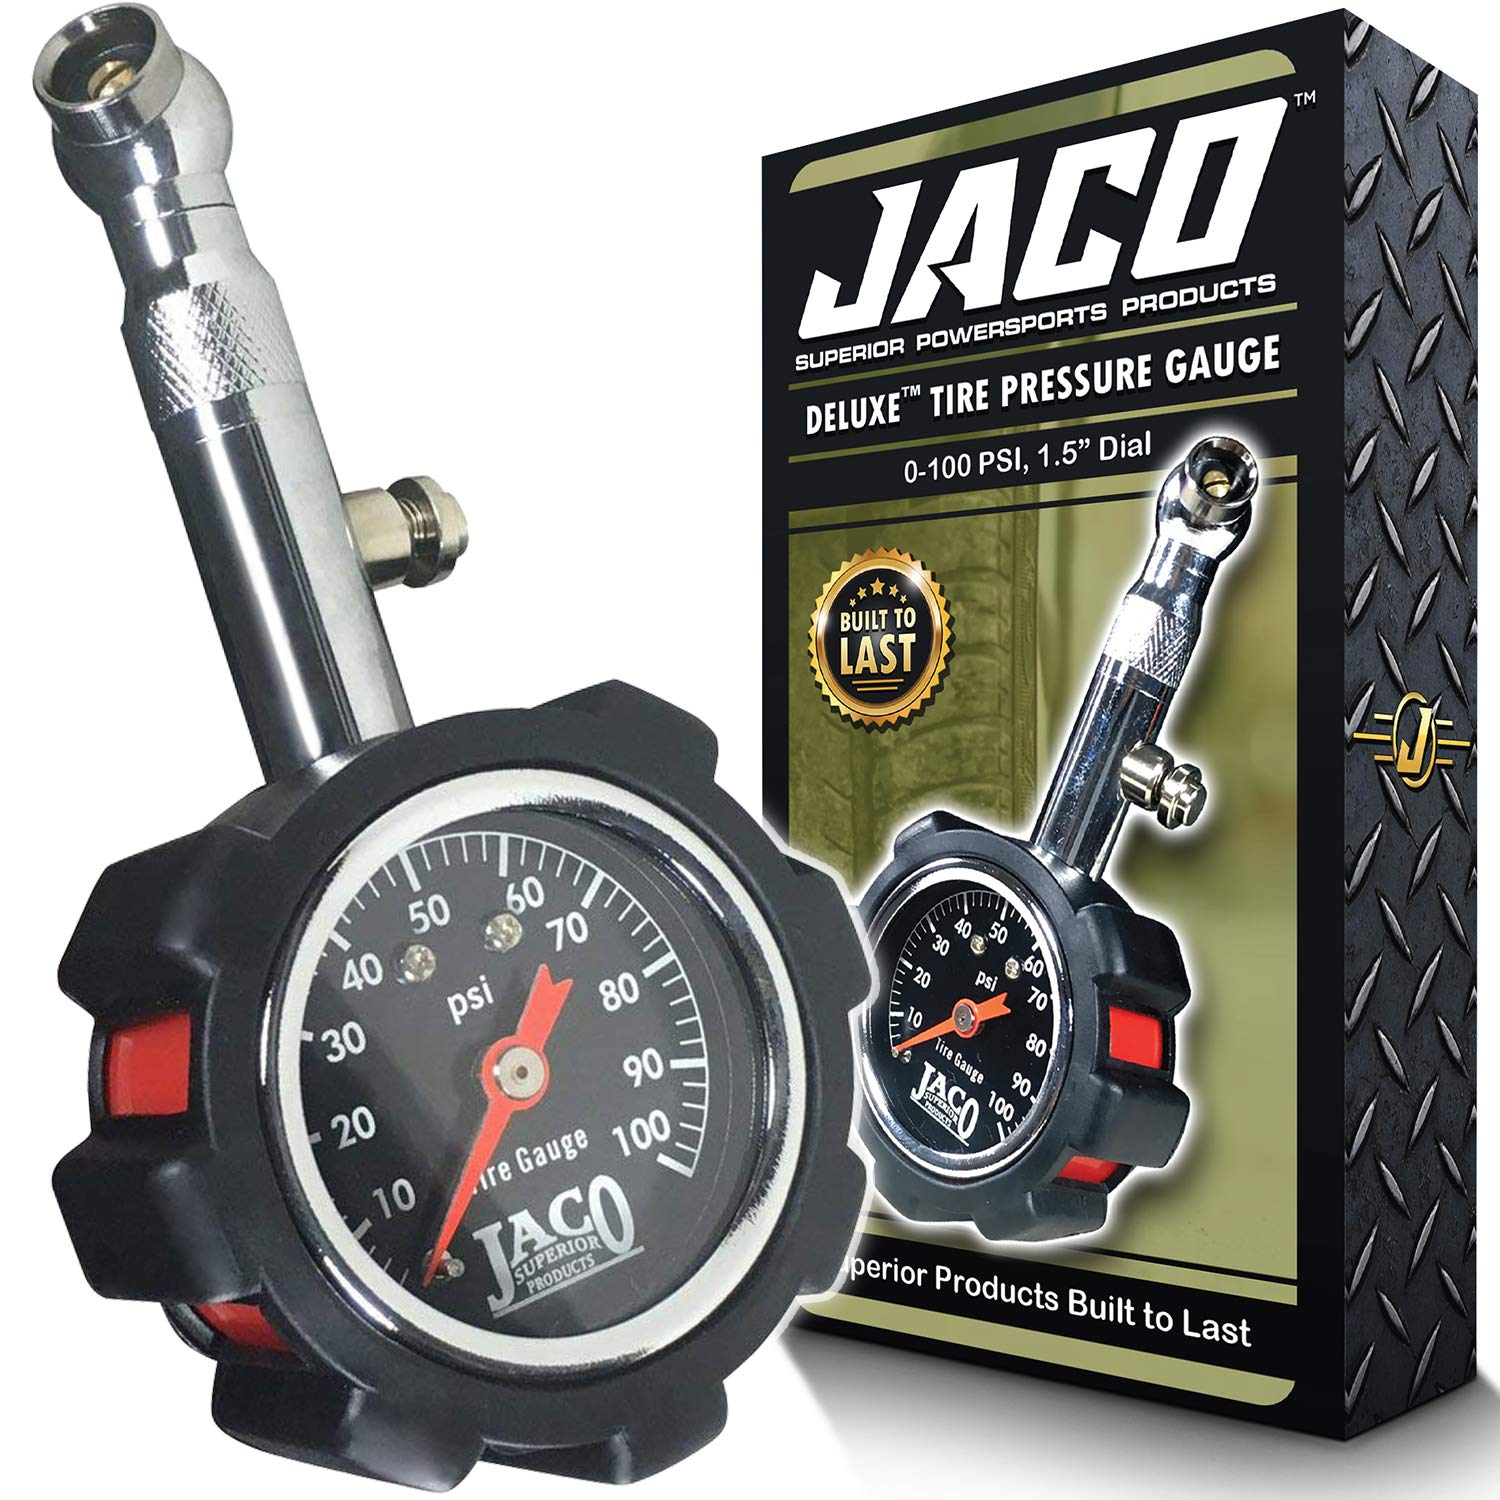 JACO Deluxe Tire Pressure Gauge - 100 PSI by JACO Superior Products